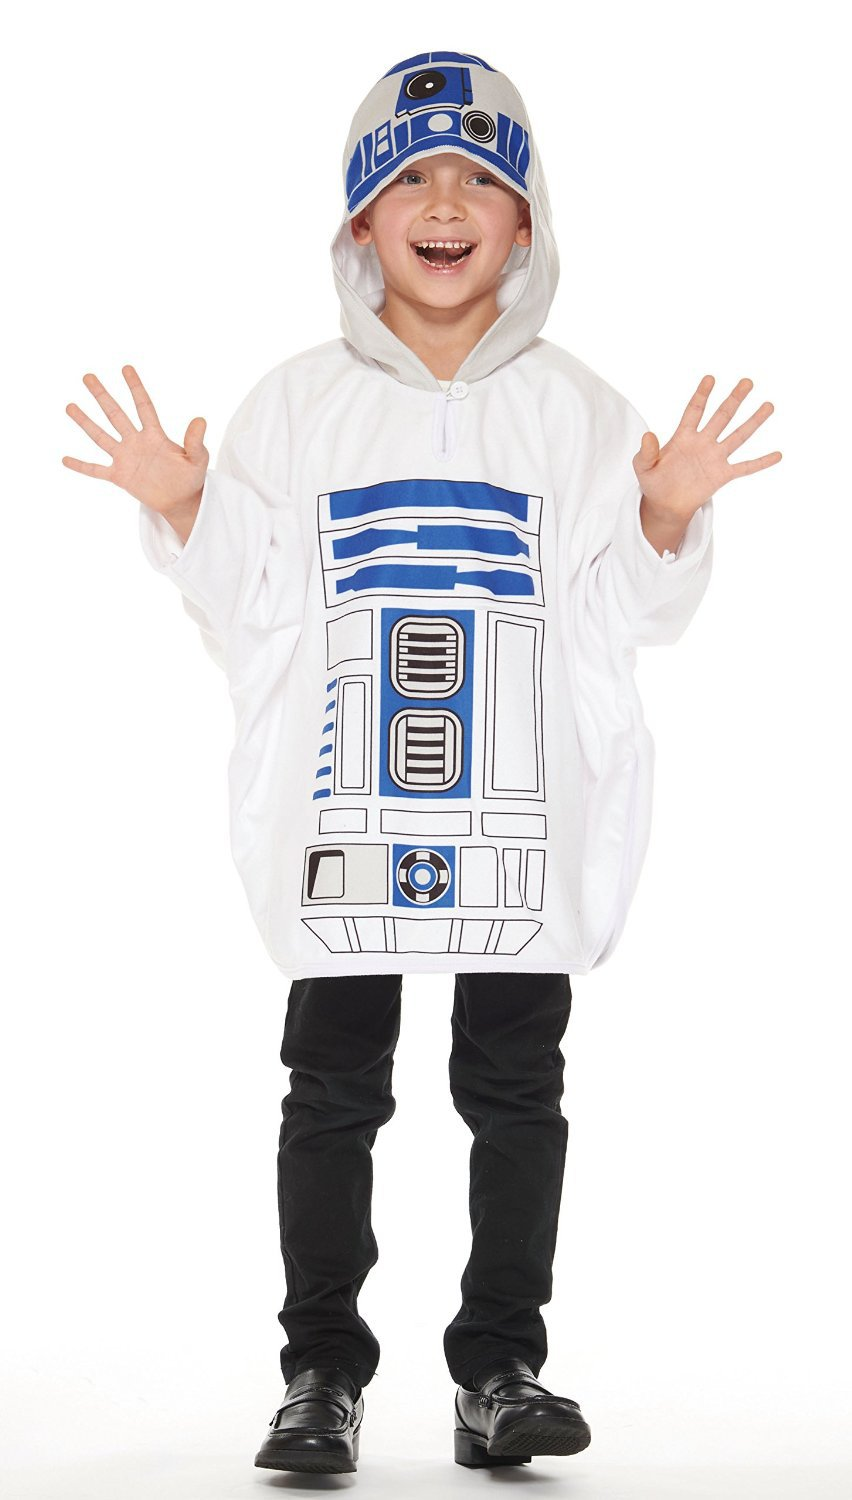 New Star Wars R2-D2 Poncho Kids Costume Unisex Length 56cm 95660 RUBIES JAPAN